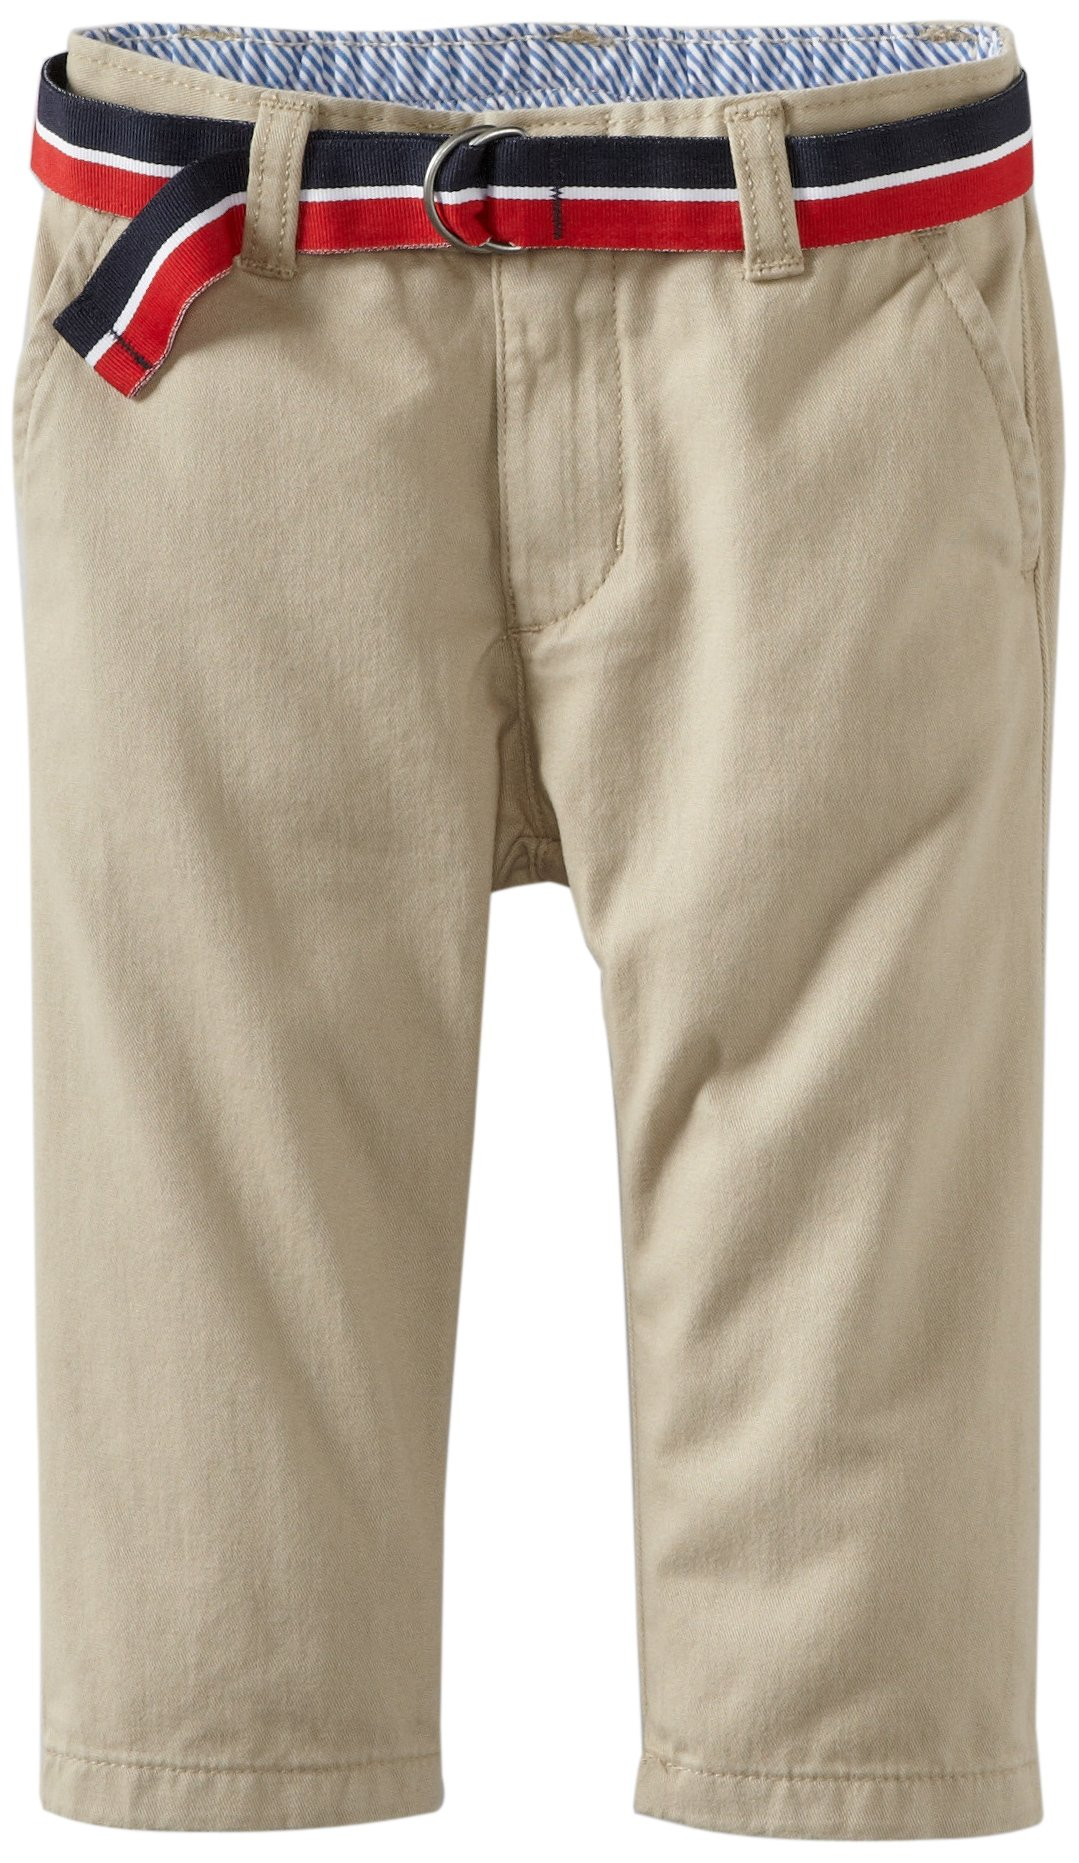 Tommy Hilfiger Baby Boys' Charlie Flat Front Pant, Travel Khaki, 18 Months